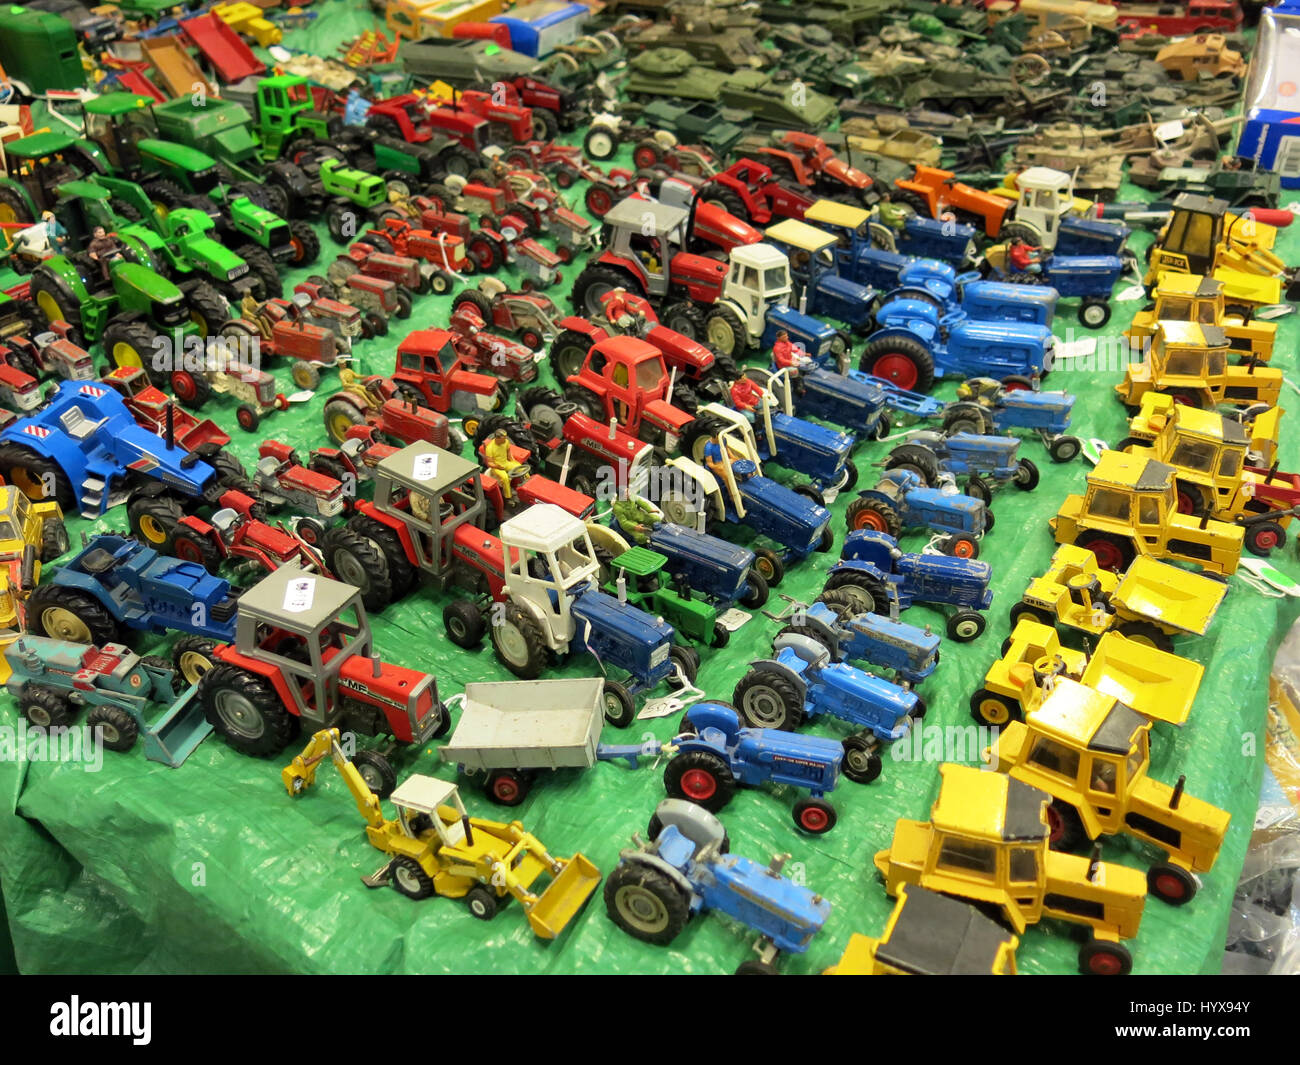 Toy Tractors For Sale >> Toy Tractors Stock Photos Toy Tractors Stock Images Alamy